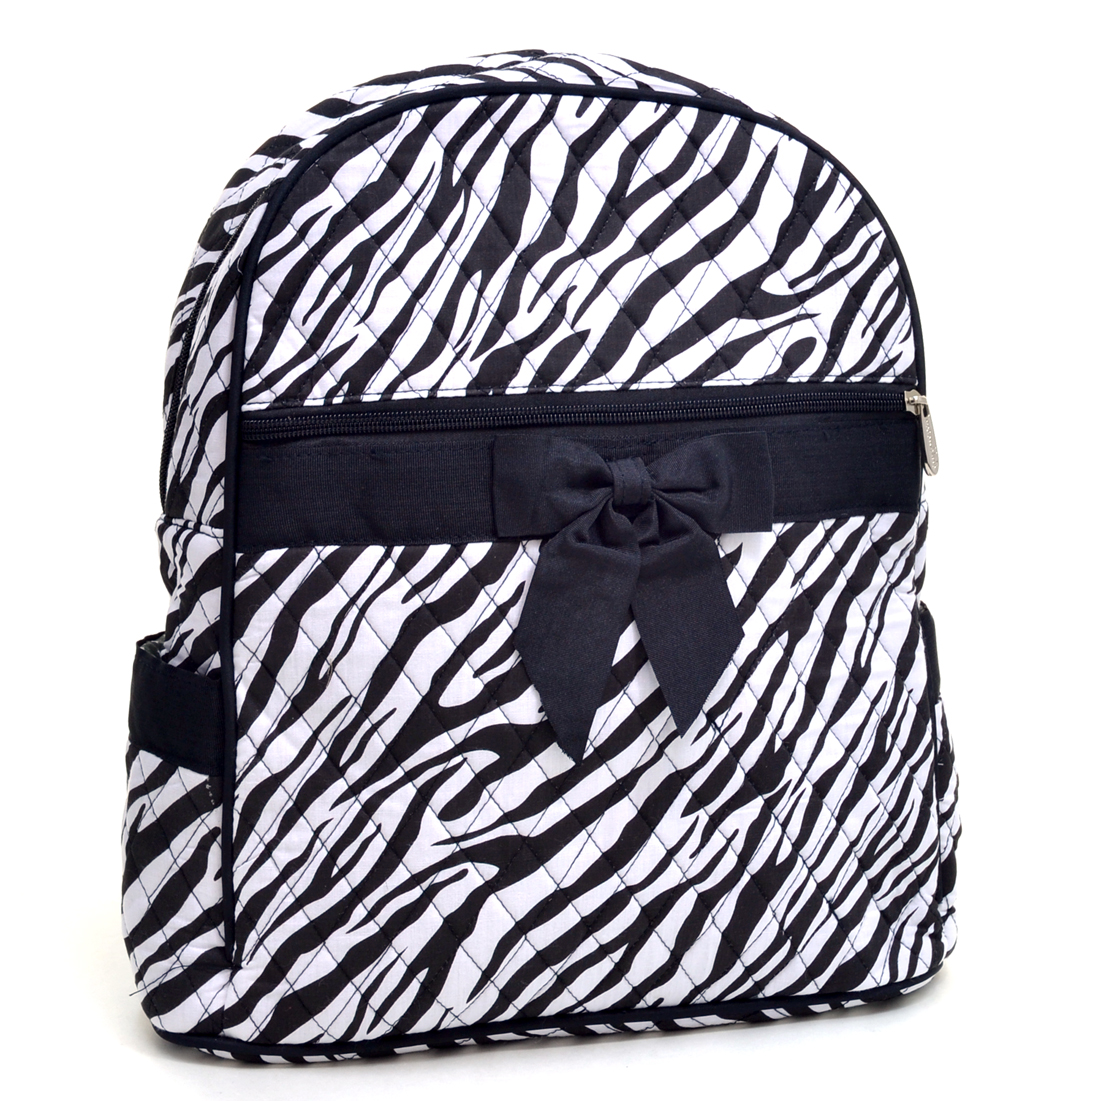 Rosen Blue Rosen Blue Zebra Printed Quilted Backpack